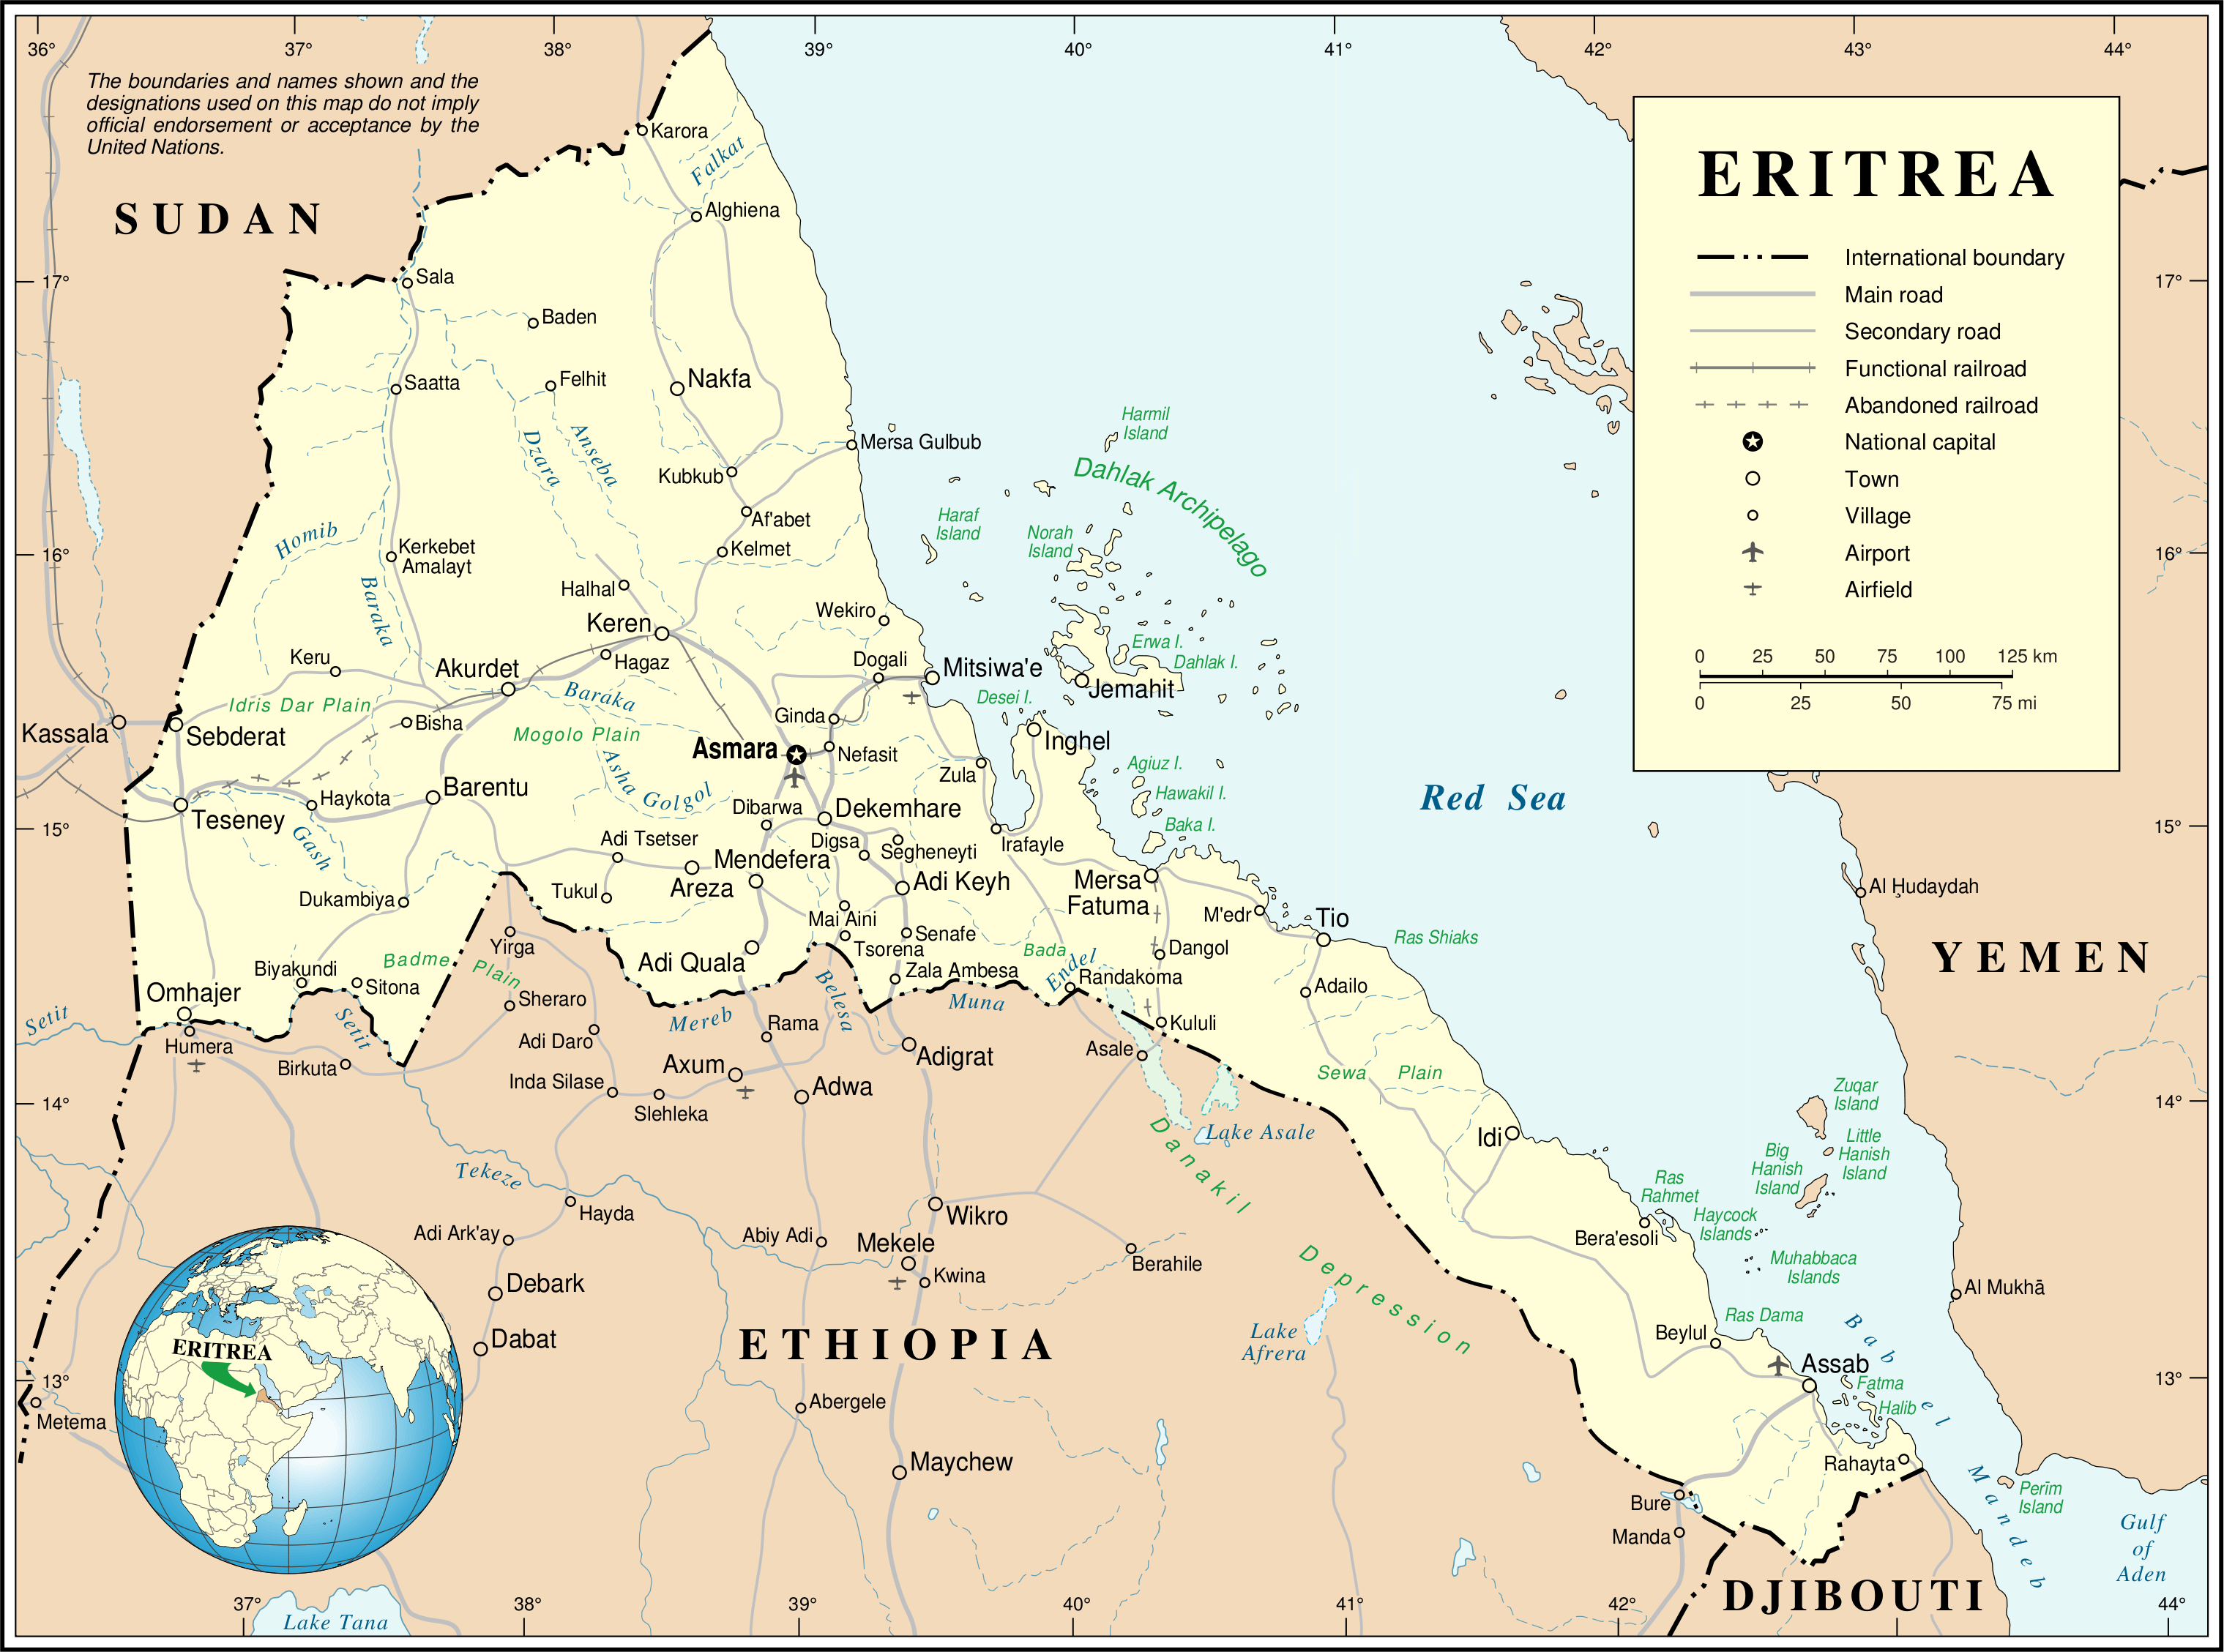 https://i2.wp.com/upload.wikimedia.org/wikipedia/commons/b/b2/Un-eritrea.png